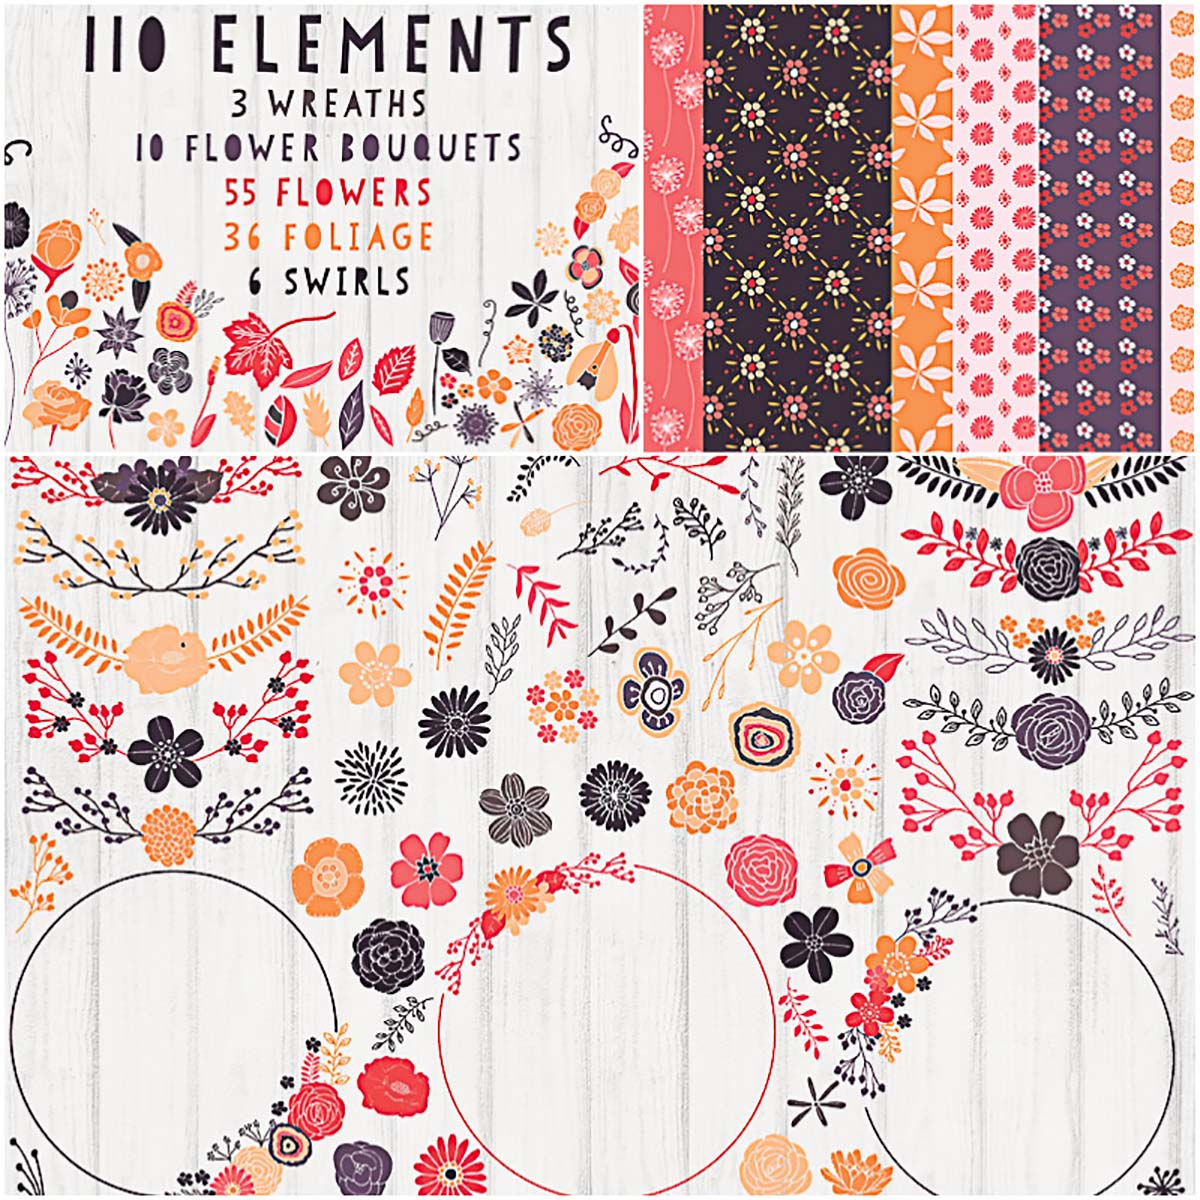 Patterns clipart free stock Floral clipart patterns and wreaths set | Free download free stock